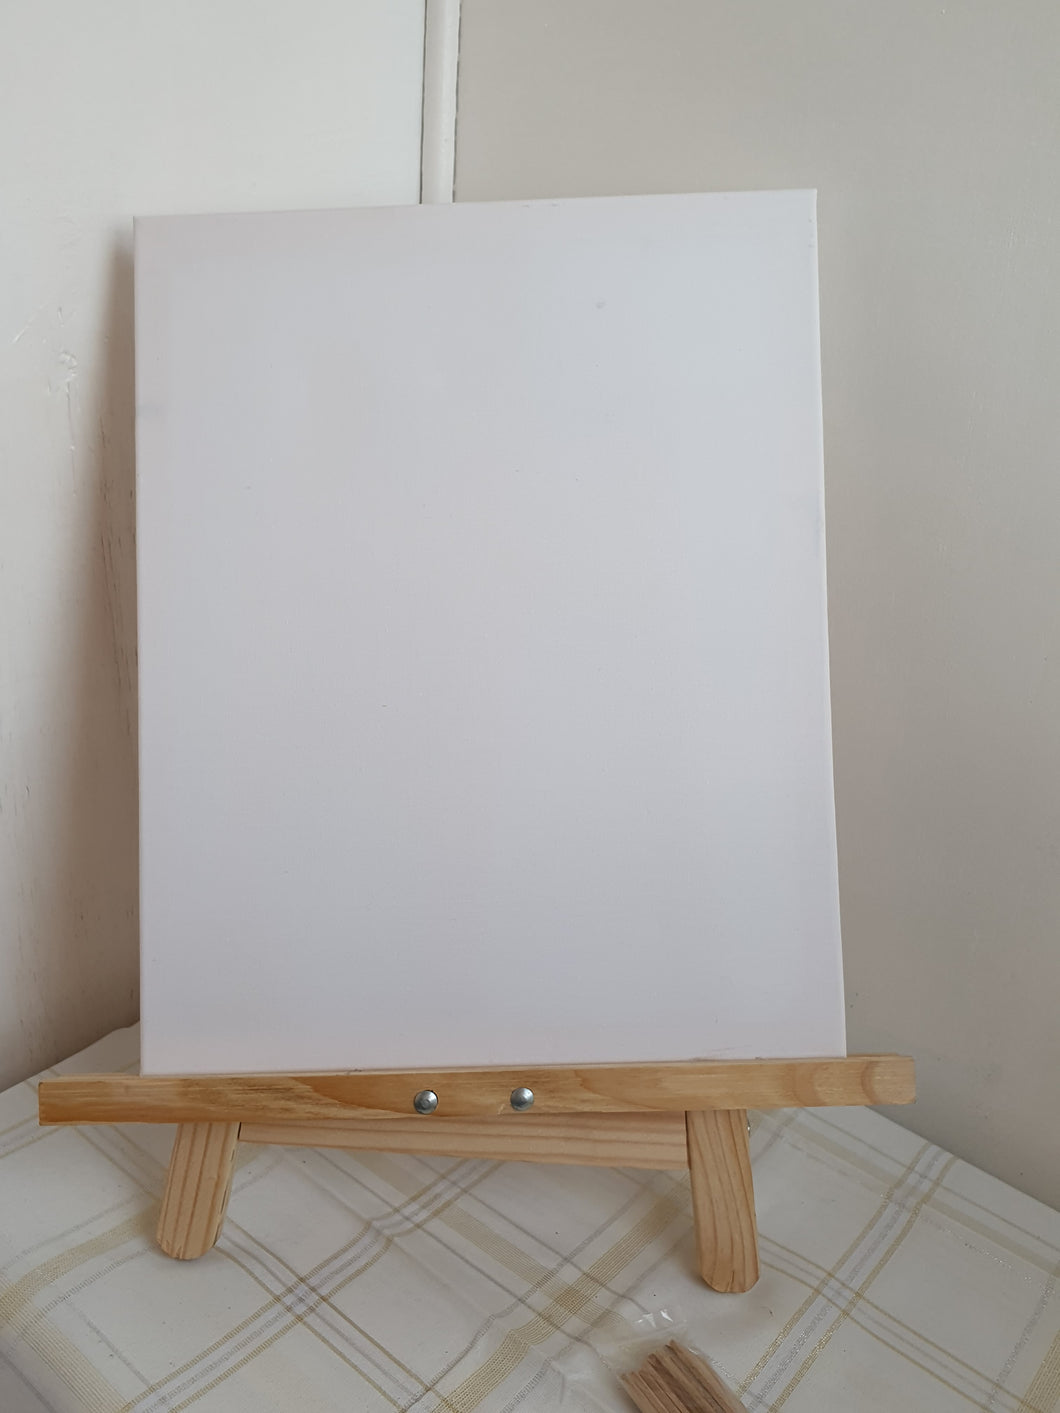 Wooden Easel Board with Canvas